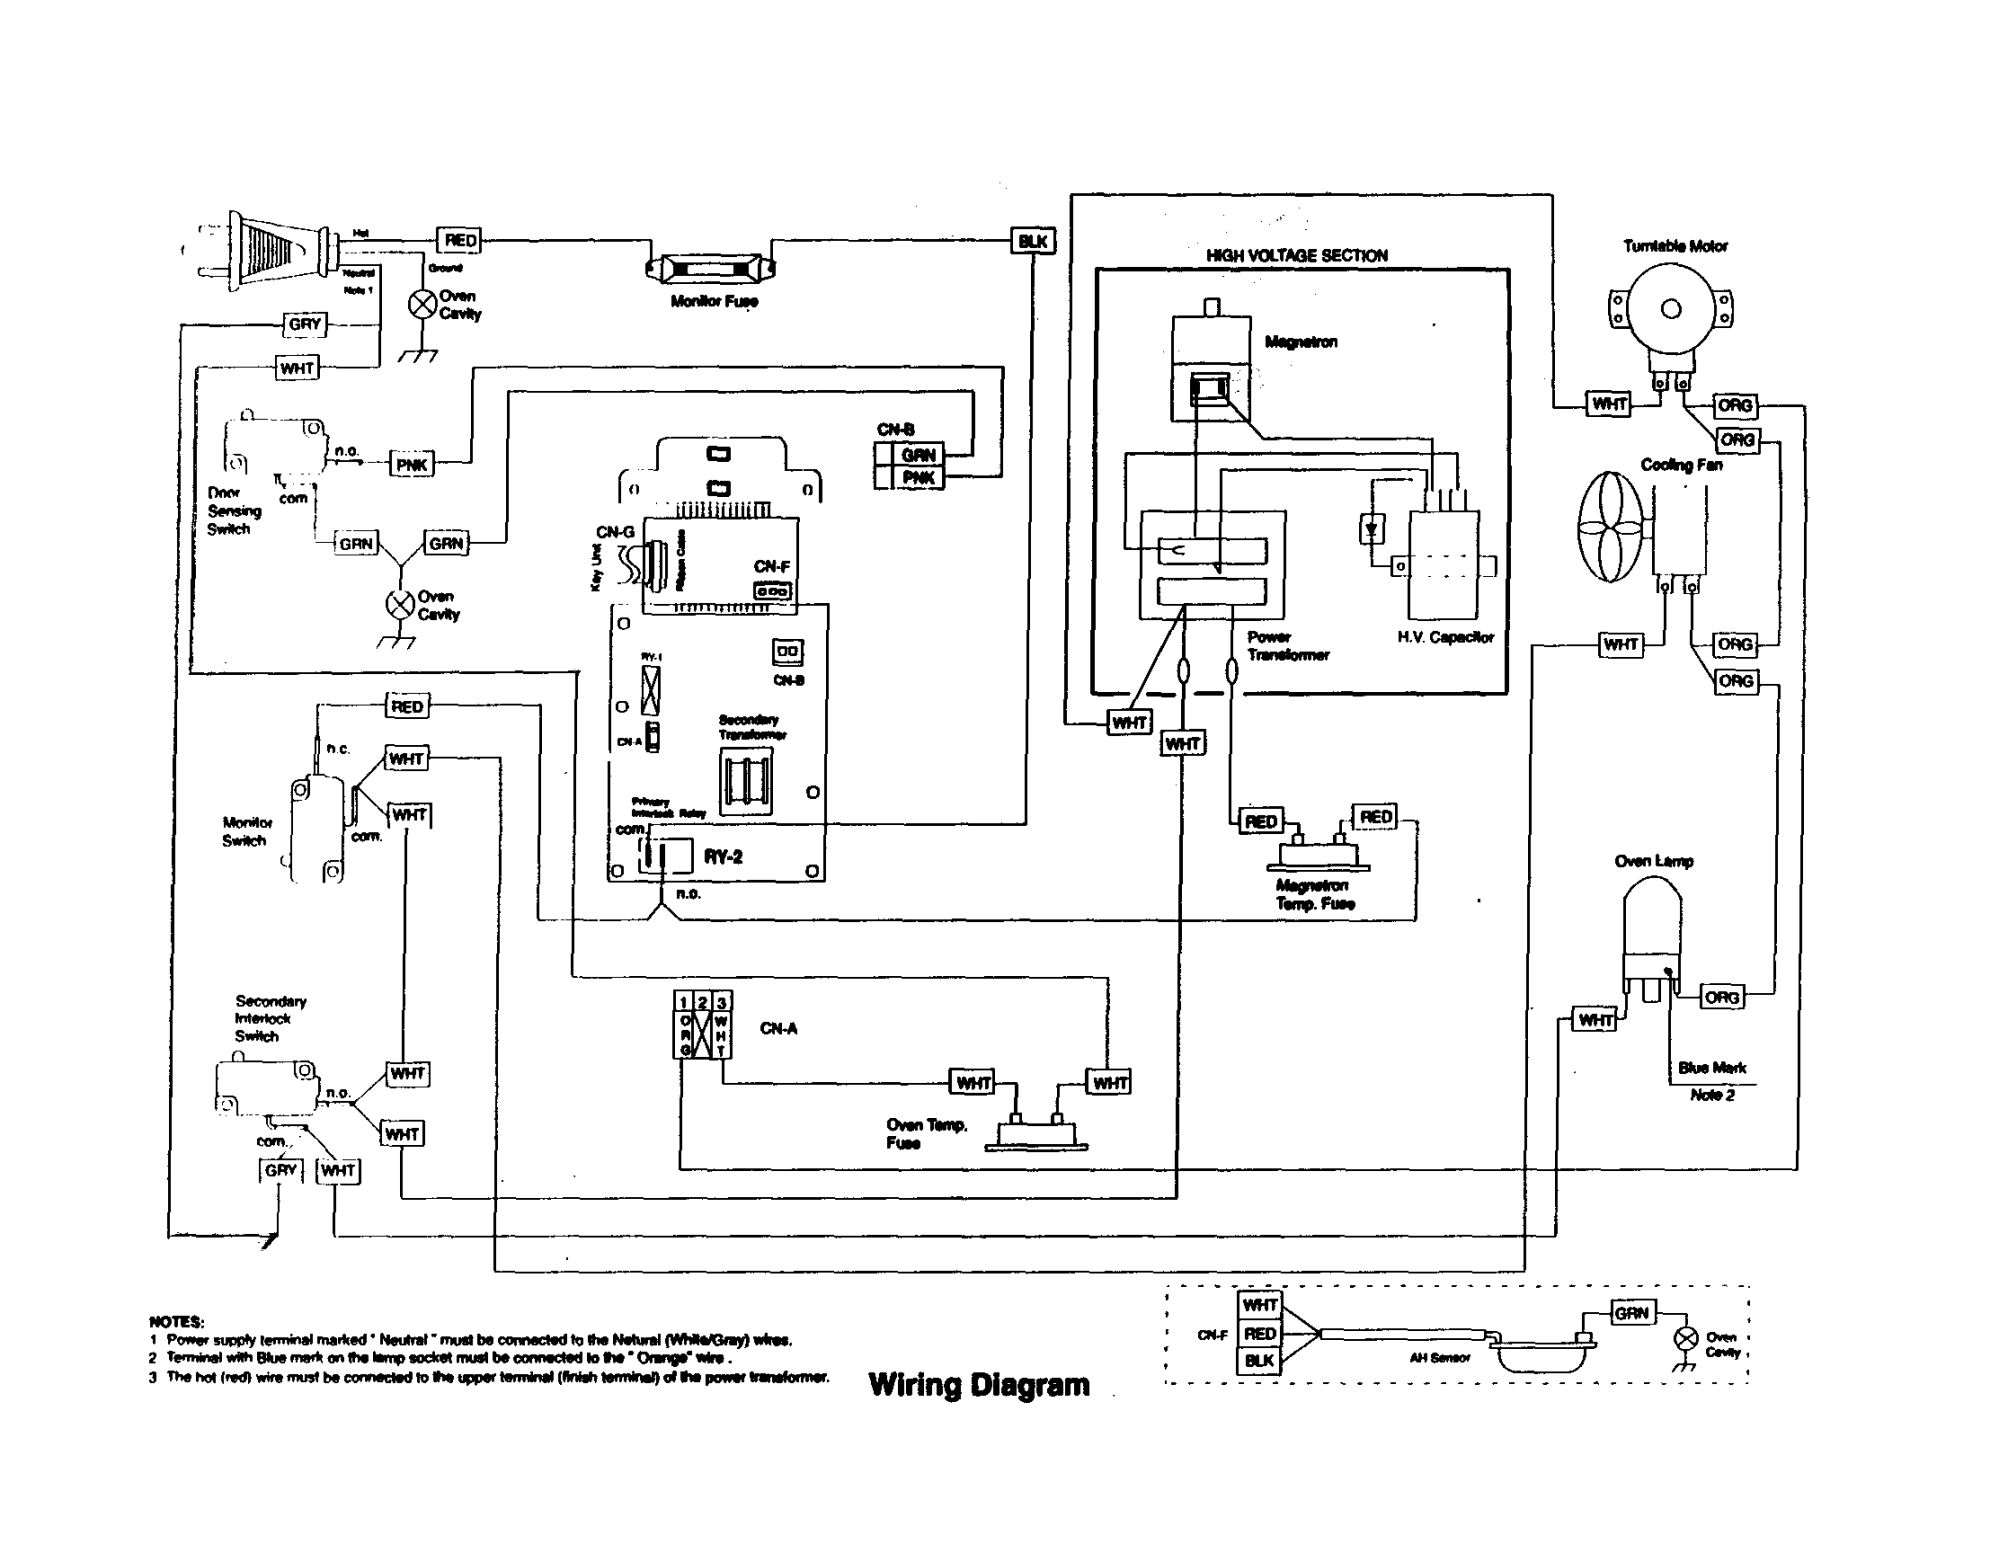 hight resolution of microwave oven diagram find microwave oven schematic schema wiring for lg microwave oven wiring diagram